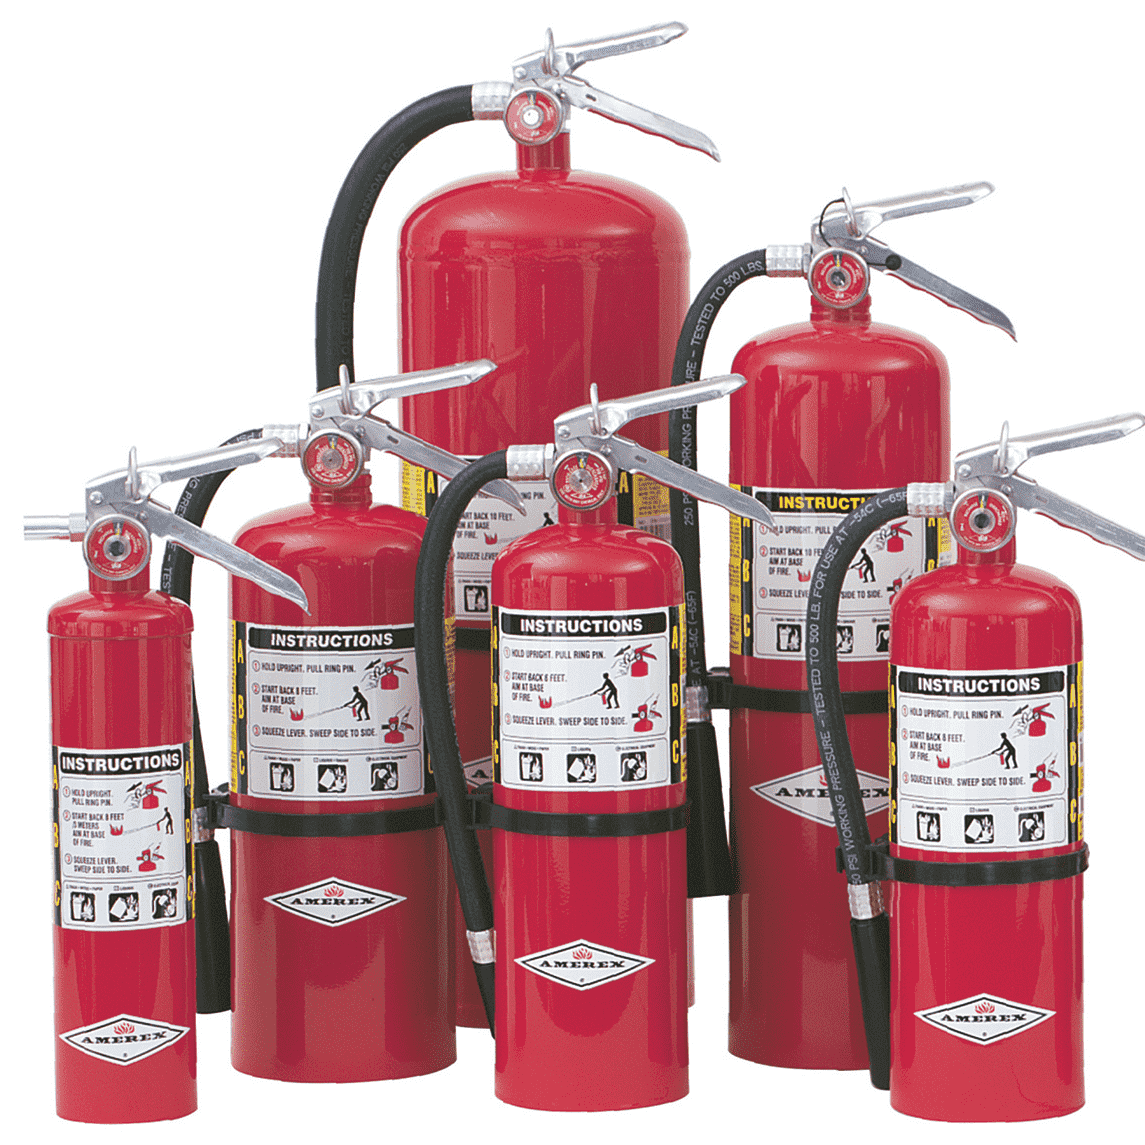 Certify Fire Extinguishers